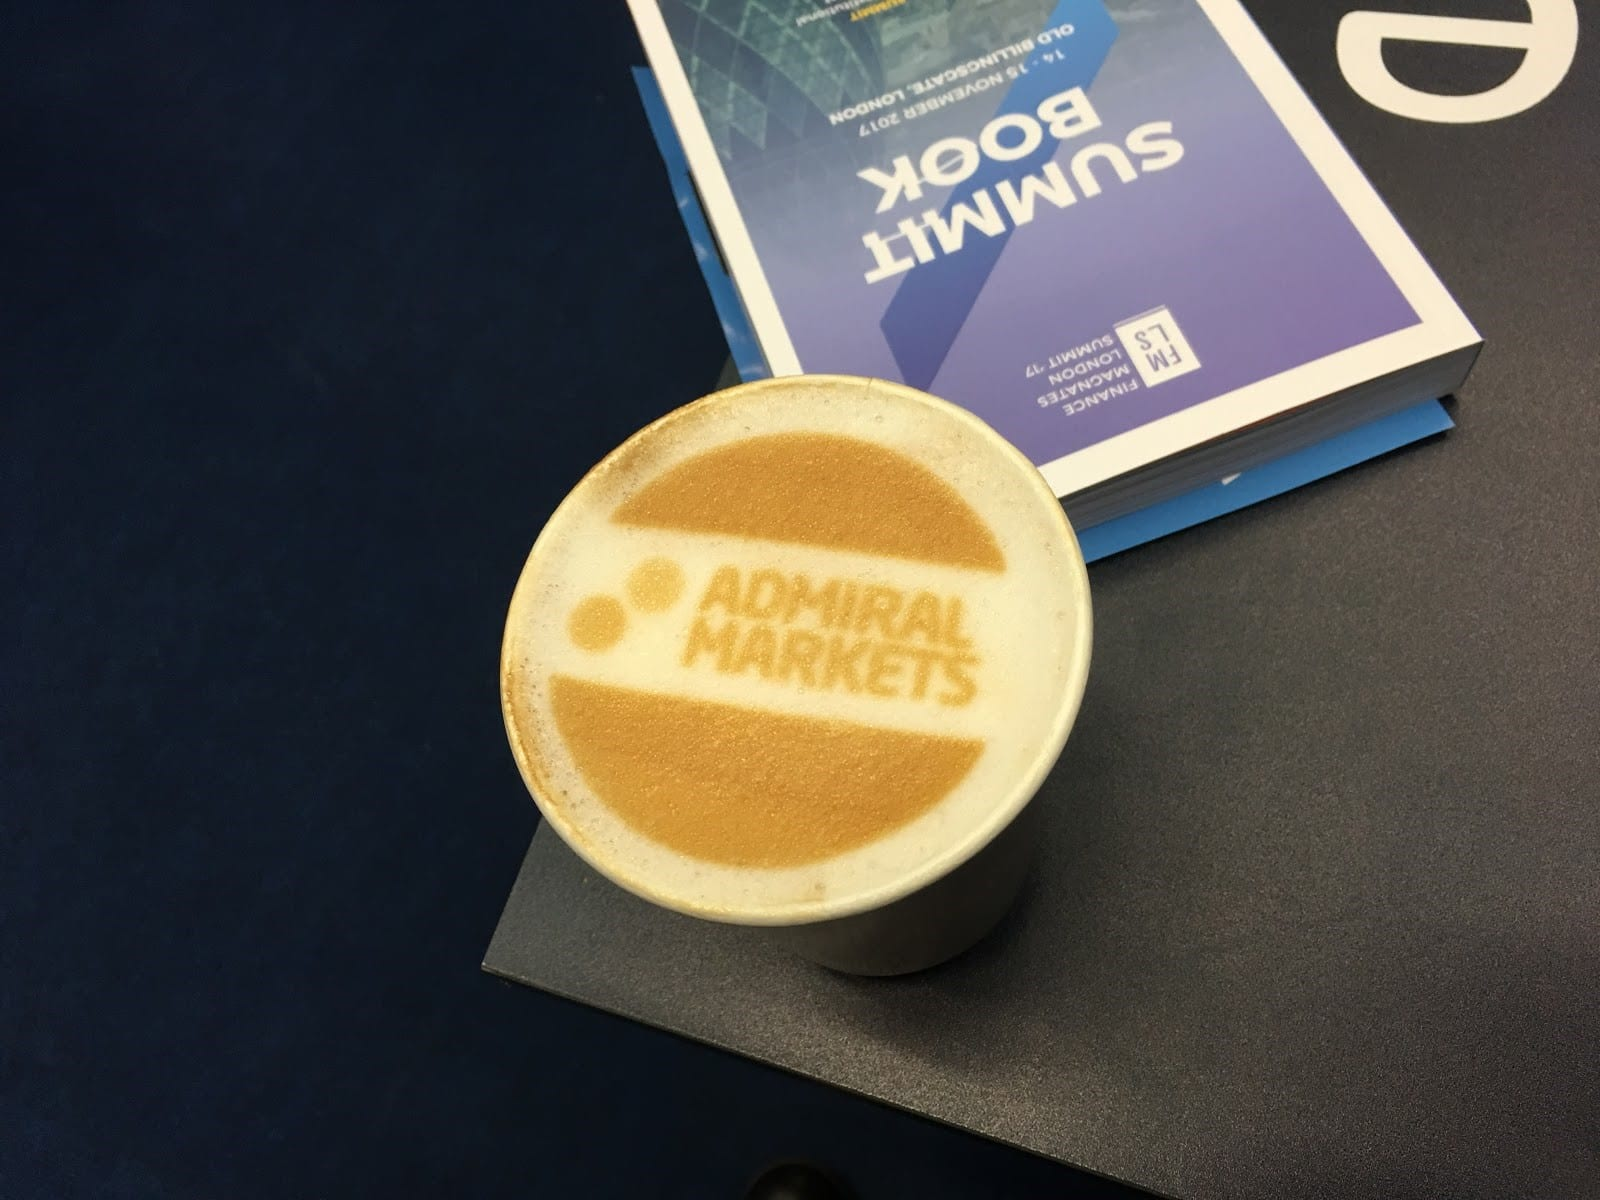 Admiral Markets coffee